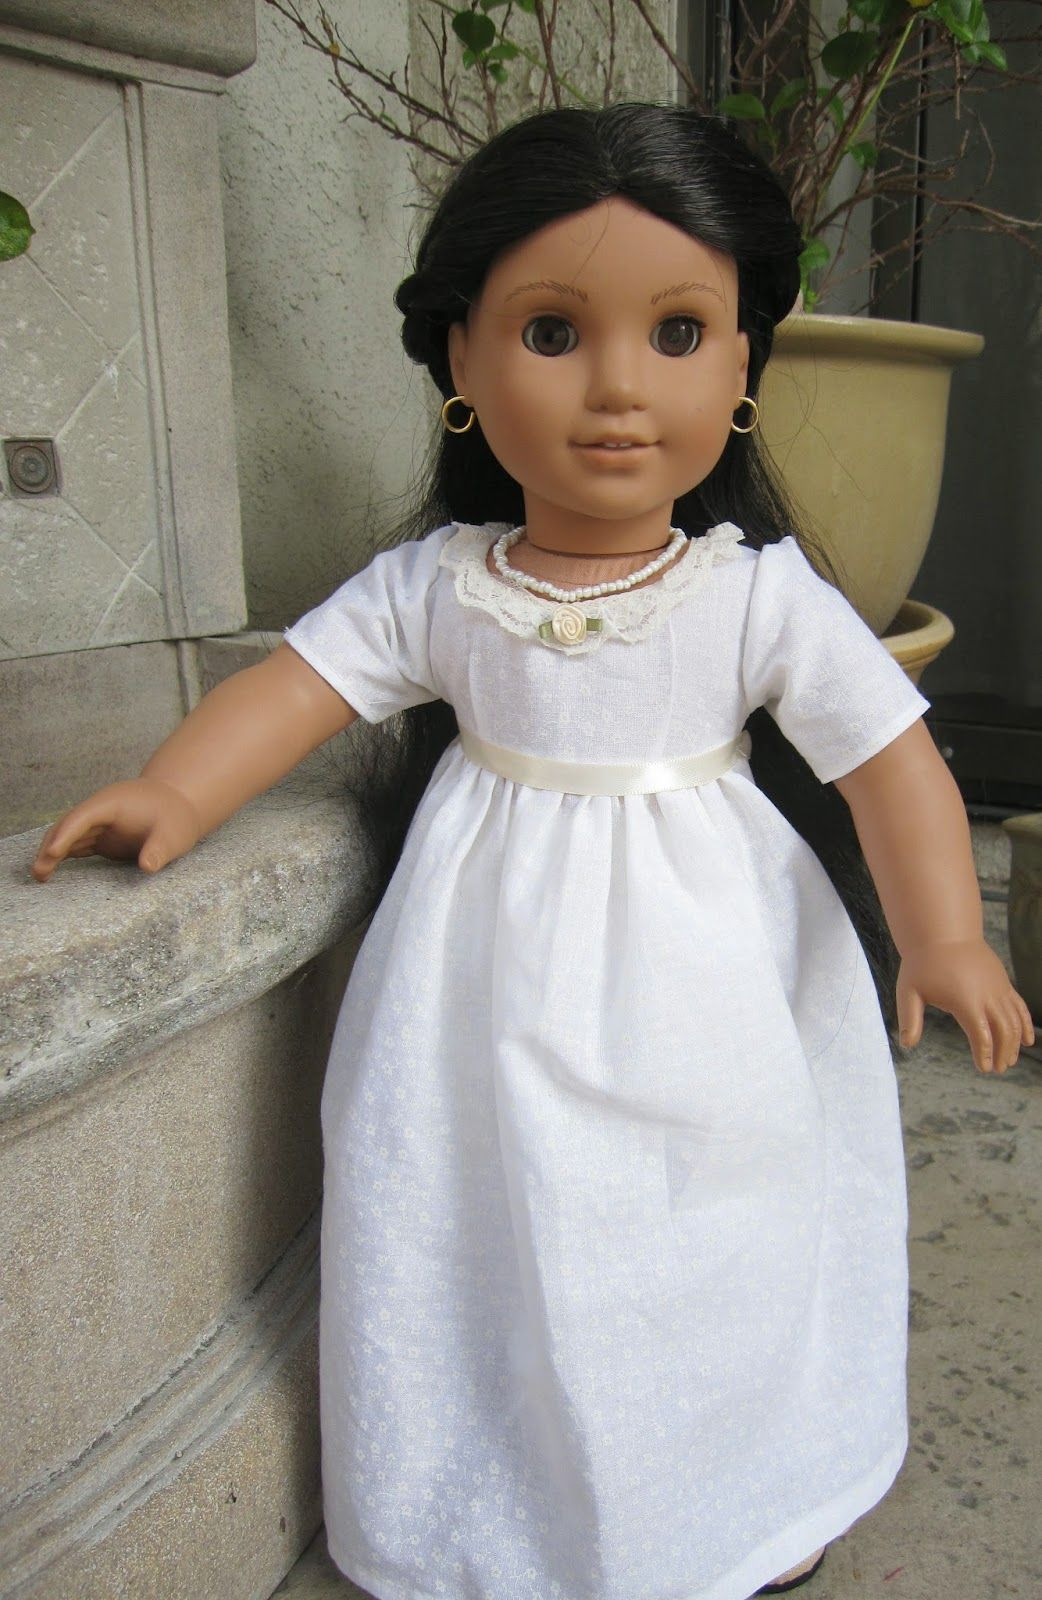 Our American Dolls: My favorite free patterns! | dolls | Pinterest ...